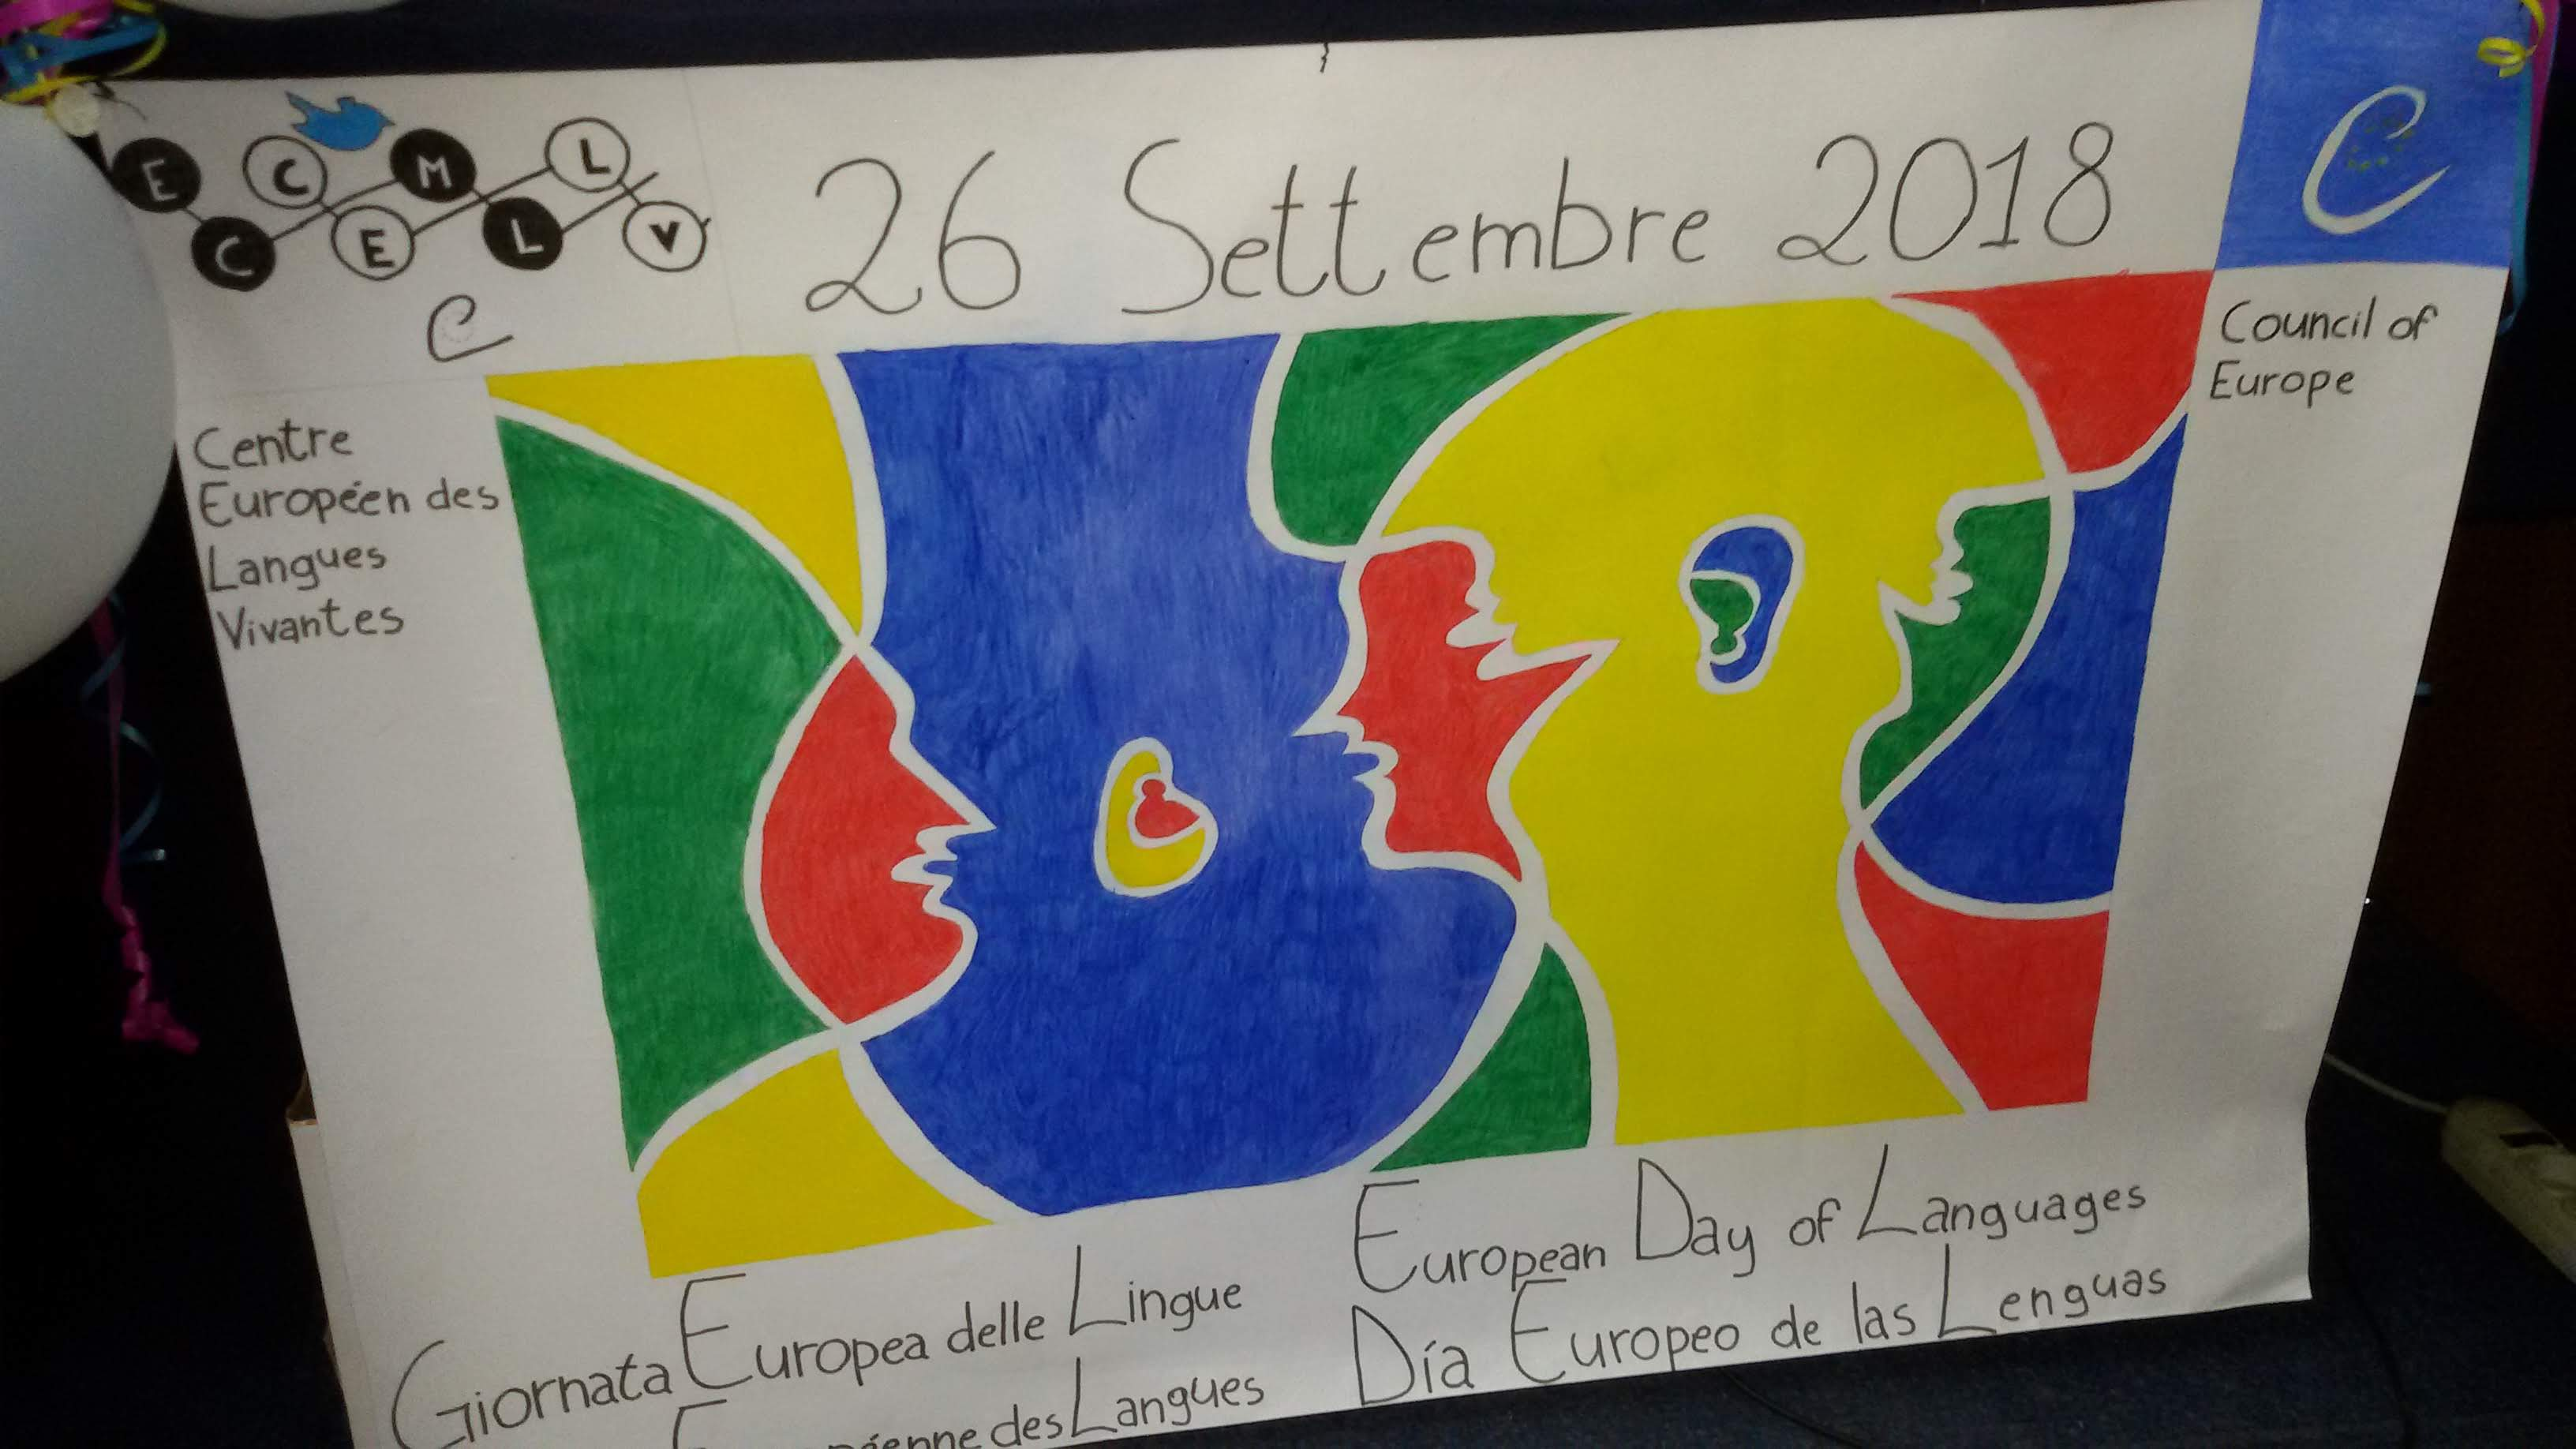 European Day of Languages Events Events Database